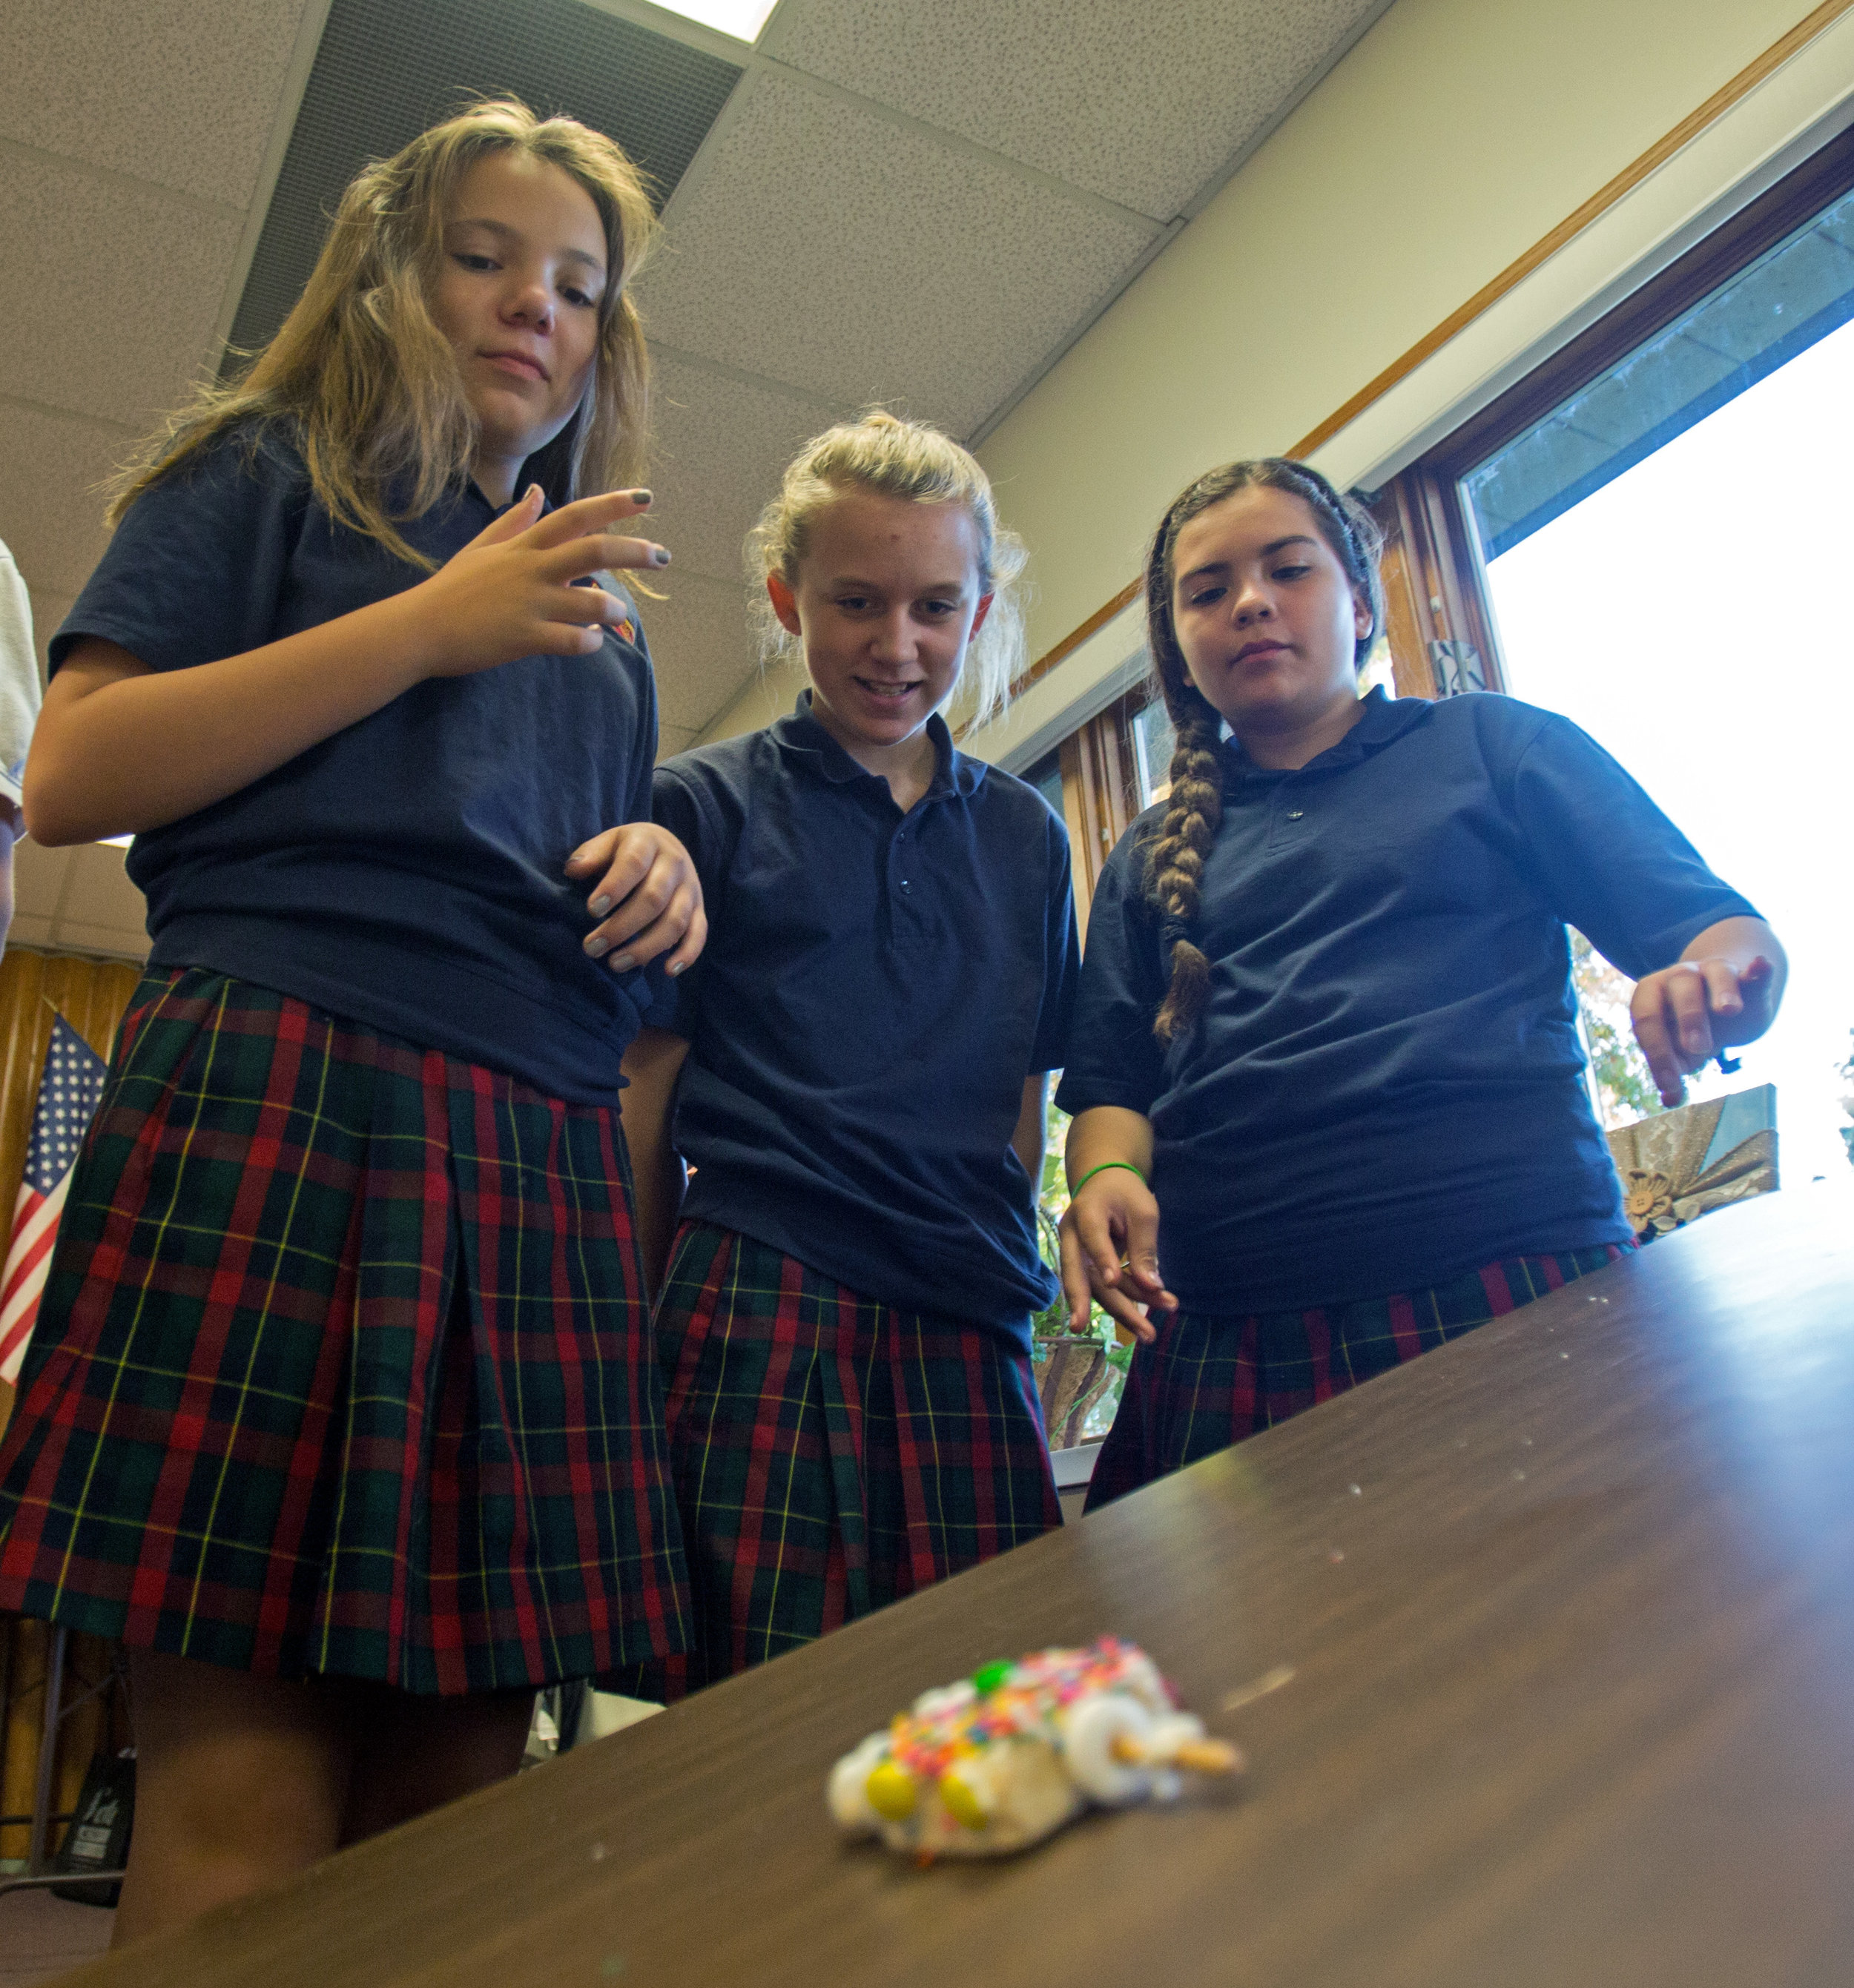 From left to right: Kendall Moesenthin, Ella Isaacs, and Adrisa Clark watch as their edible car built as part of the school's STEAM program slides down a ramp in their classroom at St. Joan of Arc School in Toledo on Wednesday, Oct. 19, 2016.